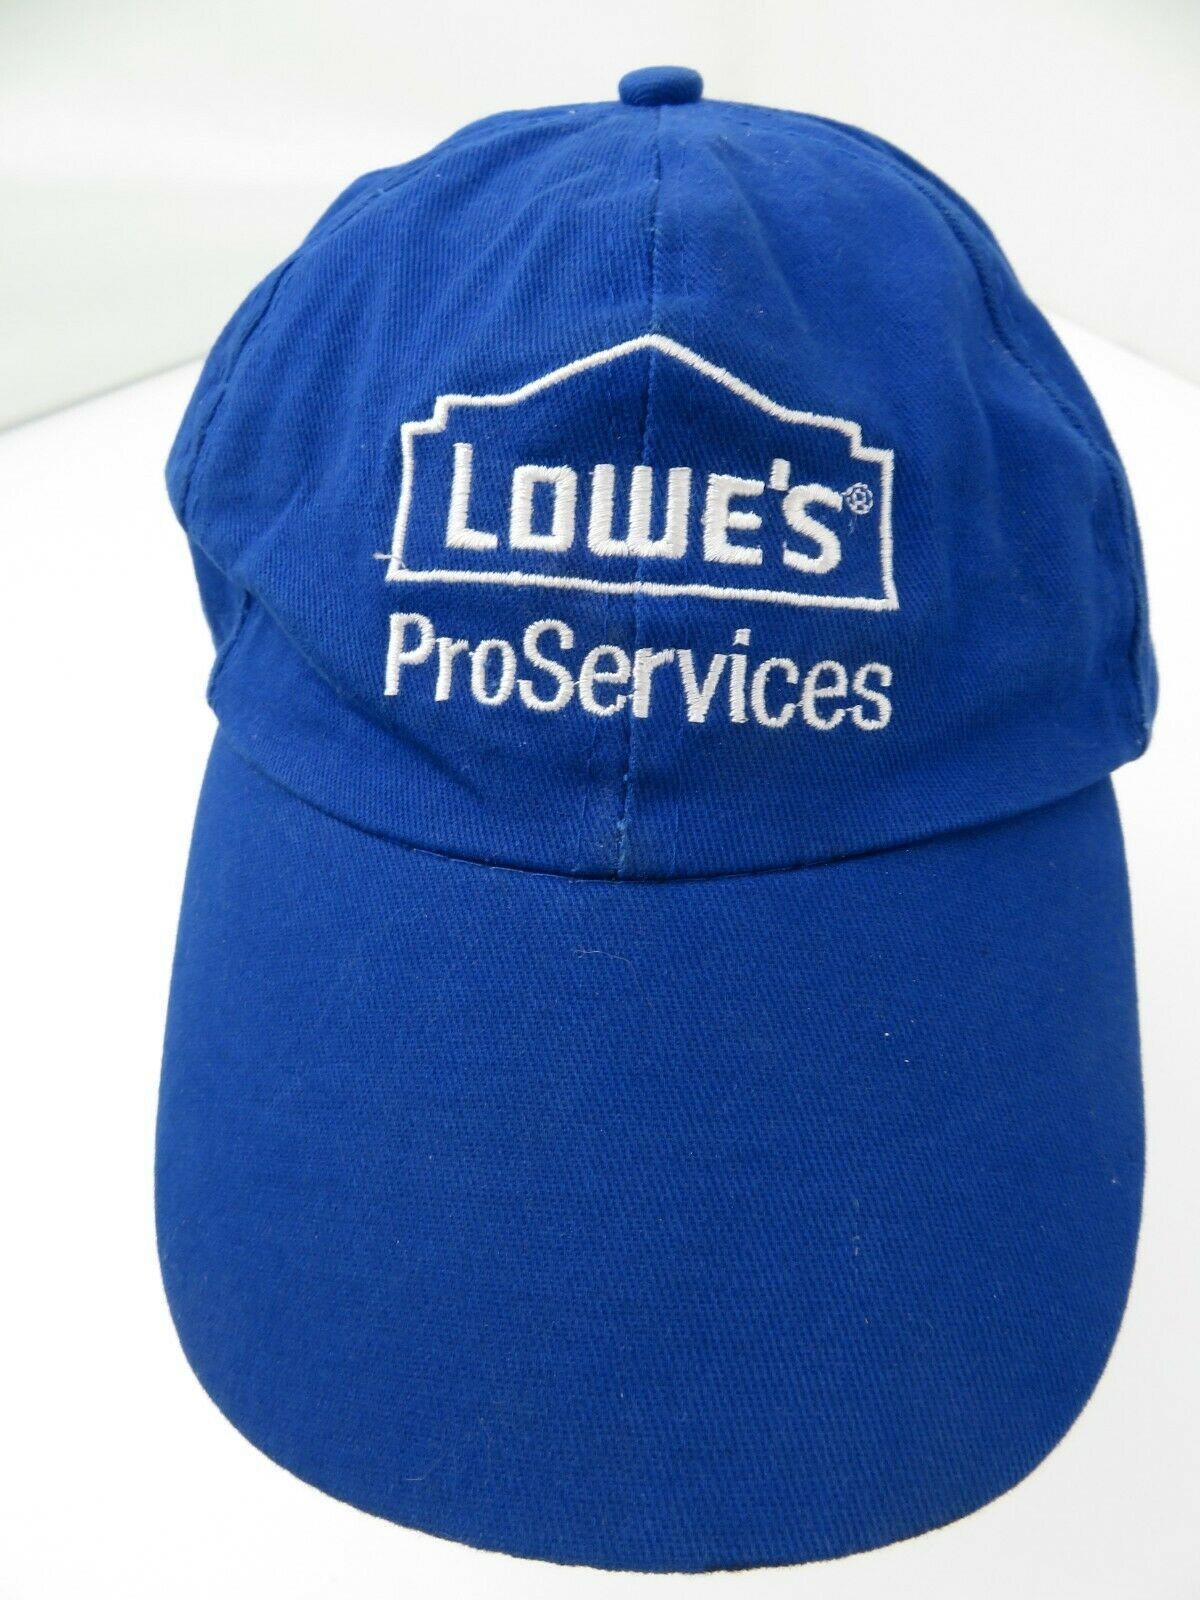 Primary image for Lowe's Pro Services Department Store Adjustable Adult Cap Hat